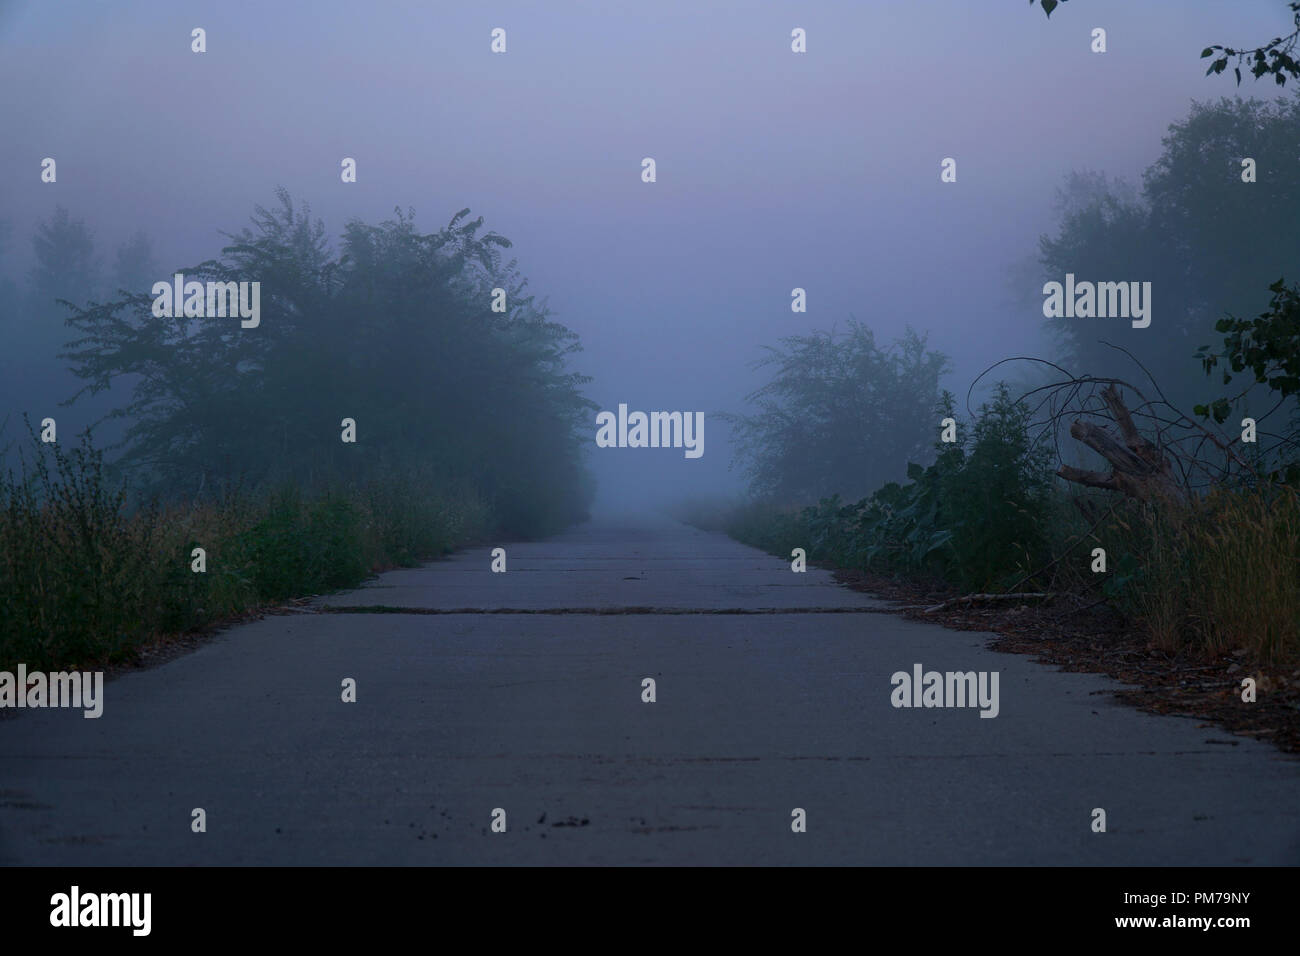 Mystical fog on a country road - Stock Image